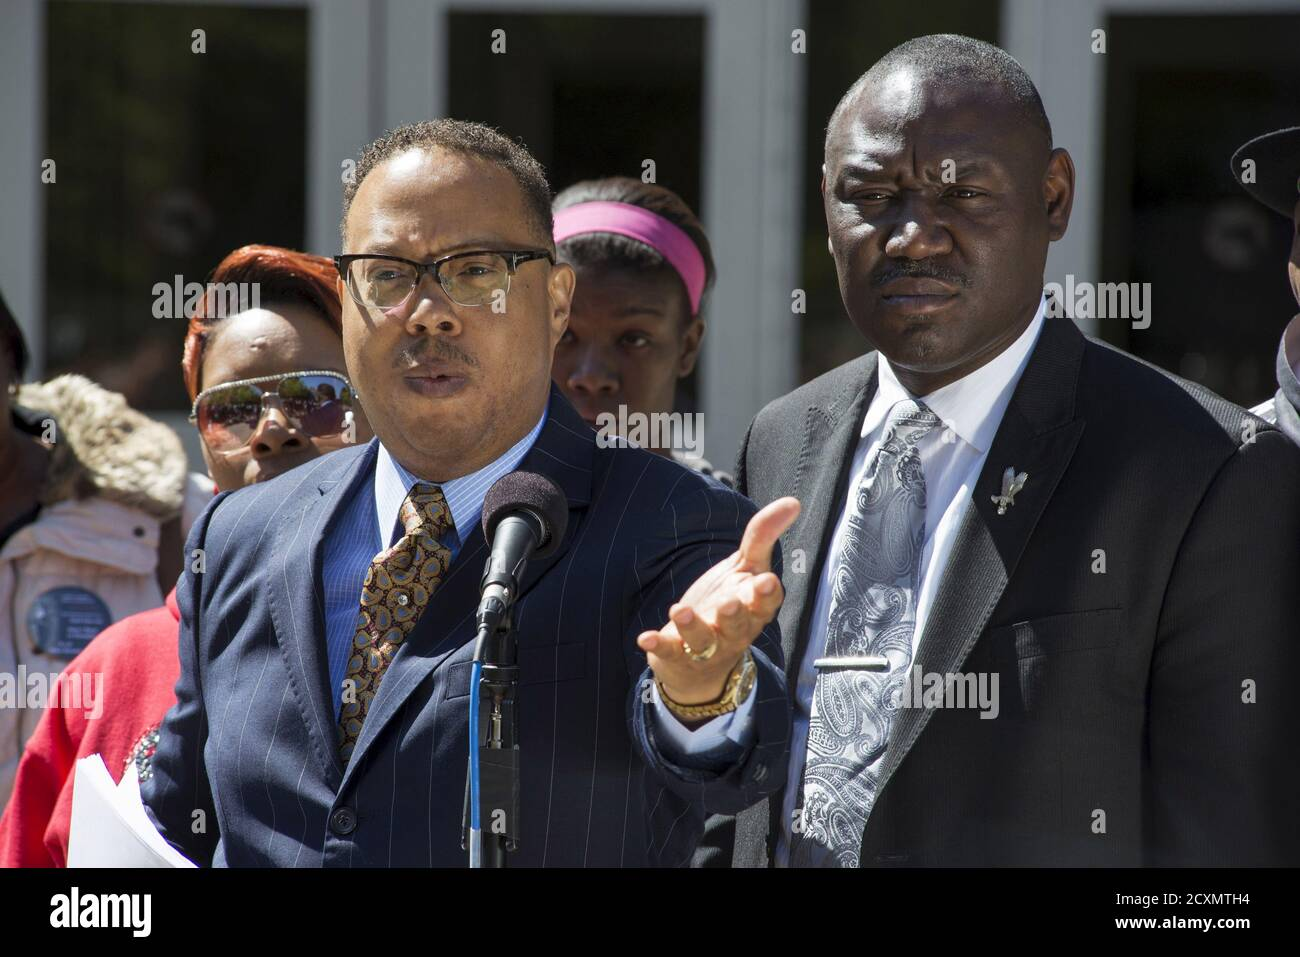 Michael Brown's family lawyers Anthony Gray (C) and Benjamin Crump (R), stand with his mother Lesley McSpadden (L) as they announce the Brown family has filed a wrongful death lawsuit against the city of Ferguson in front of the St. Louis County Circuit Court in Clayton, Missouri, April 23, 2015. The family of Michael Brown filed a wrongful death lawsuit against the city of Ferguson on Thursday, seeking unspecified damages and police reforms after the black teen's killing by a white policeman prompted a national debate on law enforcement and race. REUTERS/Kate Munsch Stock Photo